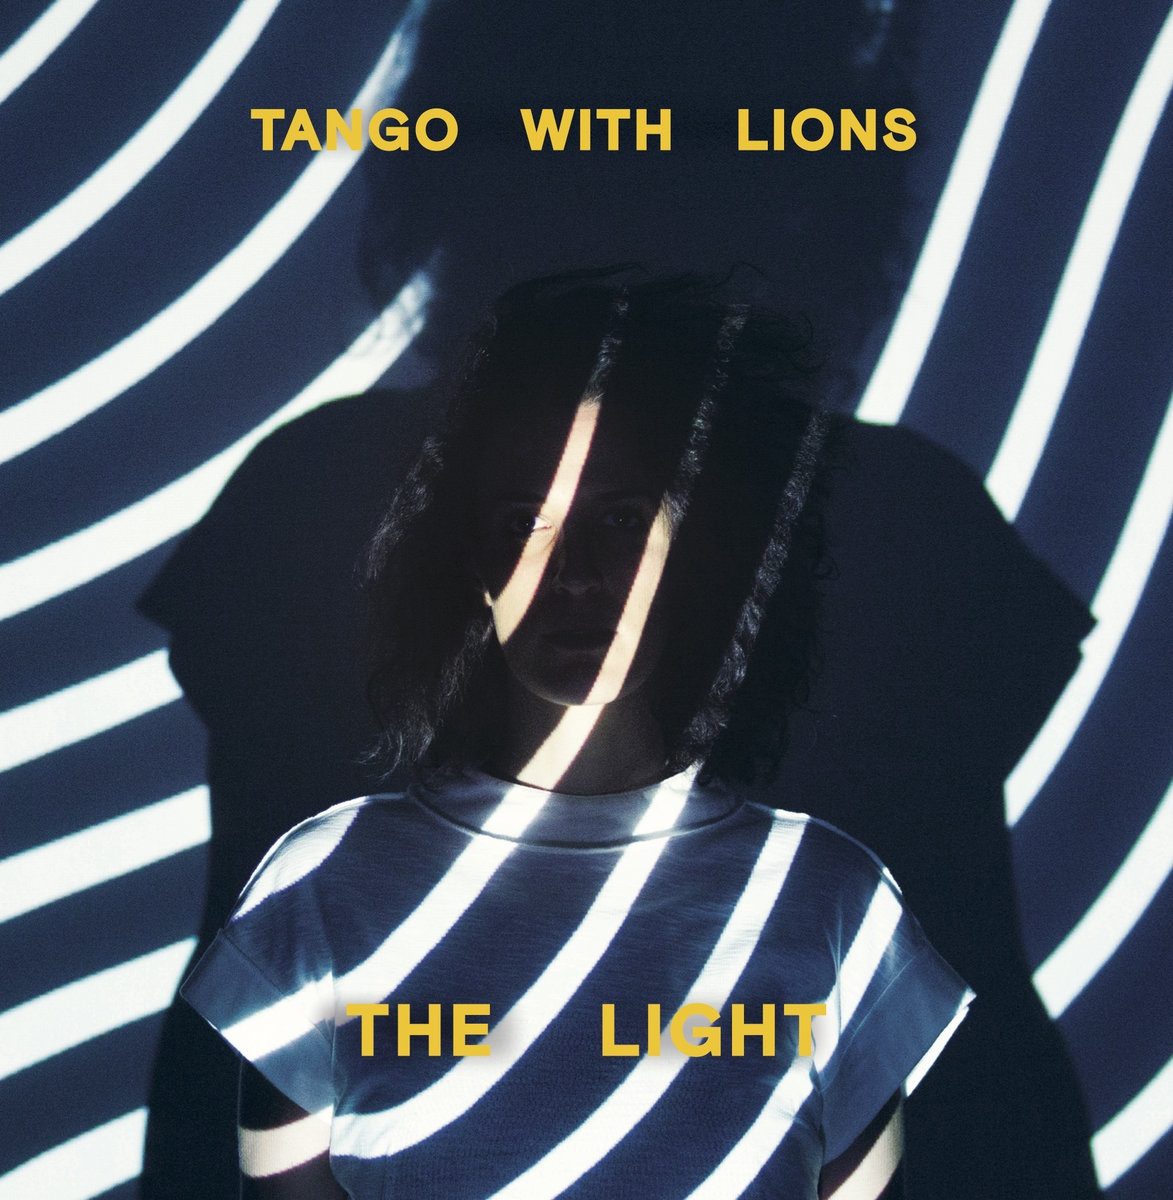 Stories Of Separation And Pleasure: Tango With Lions' The Light